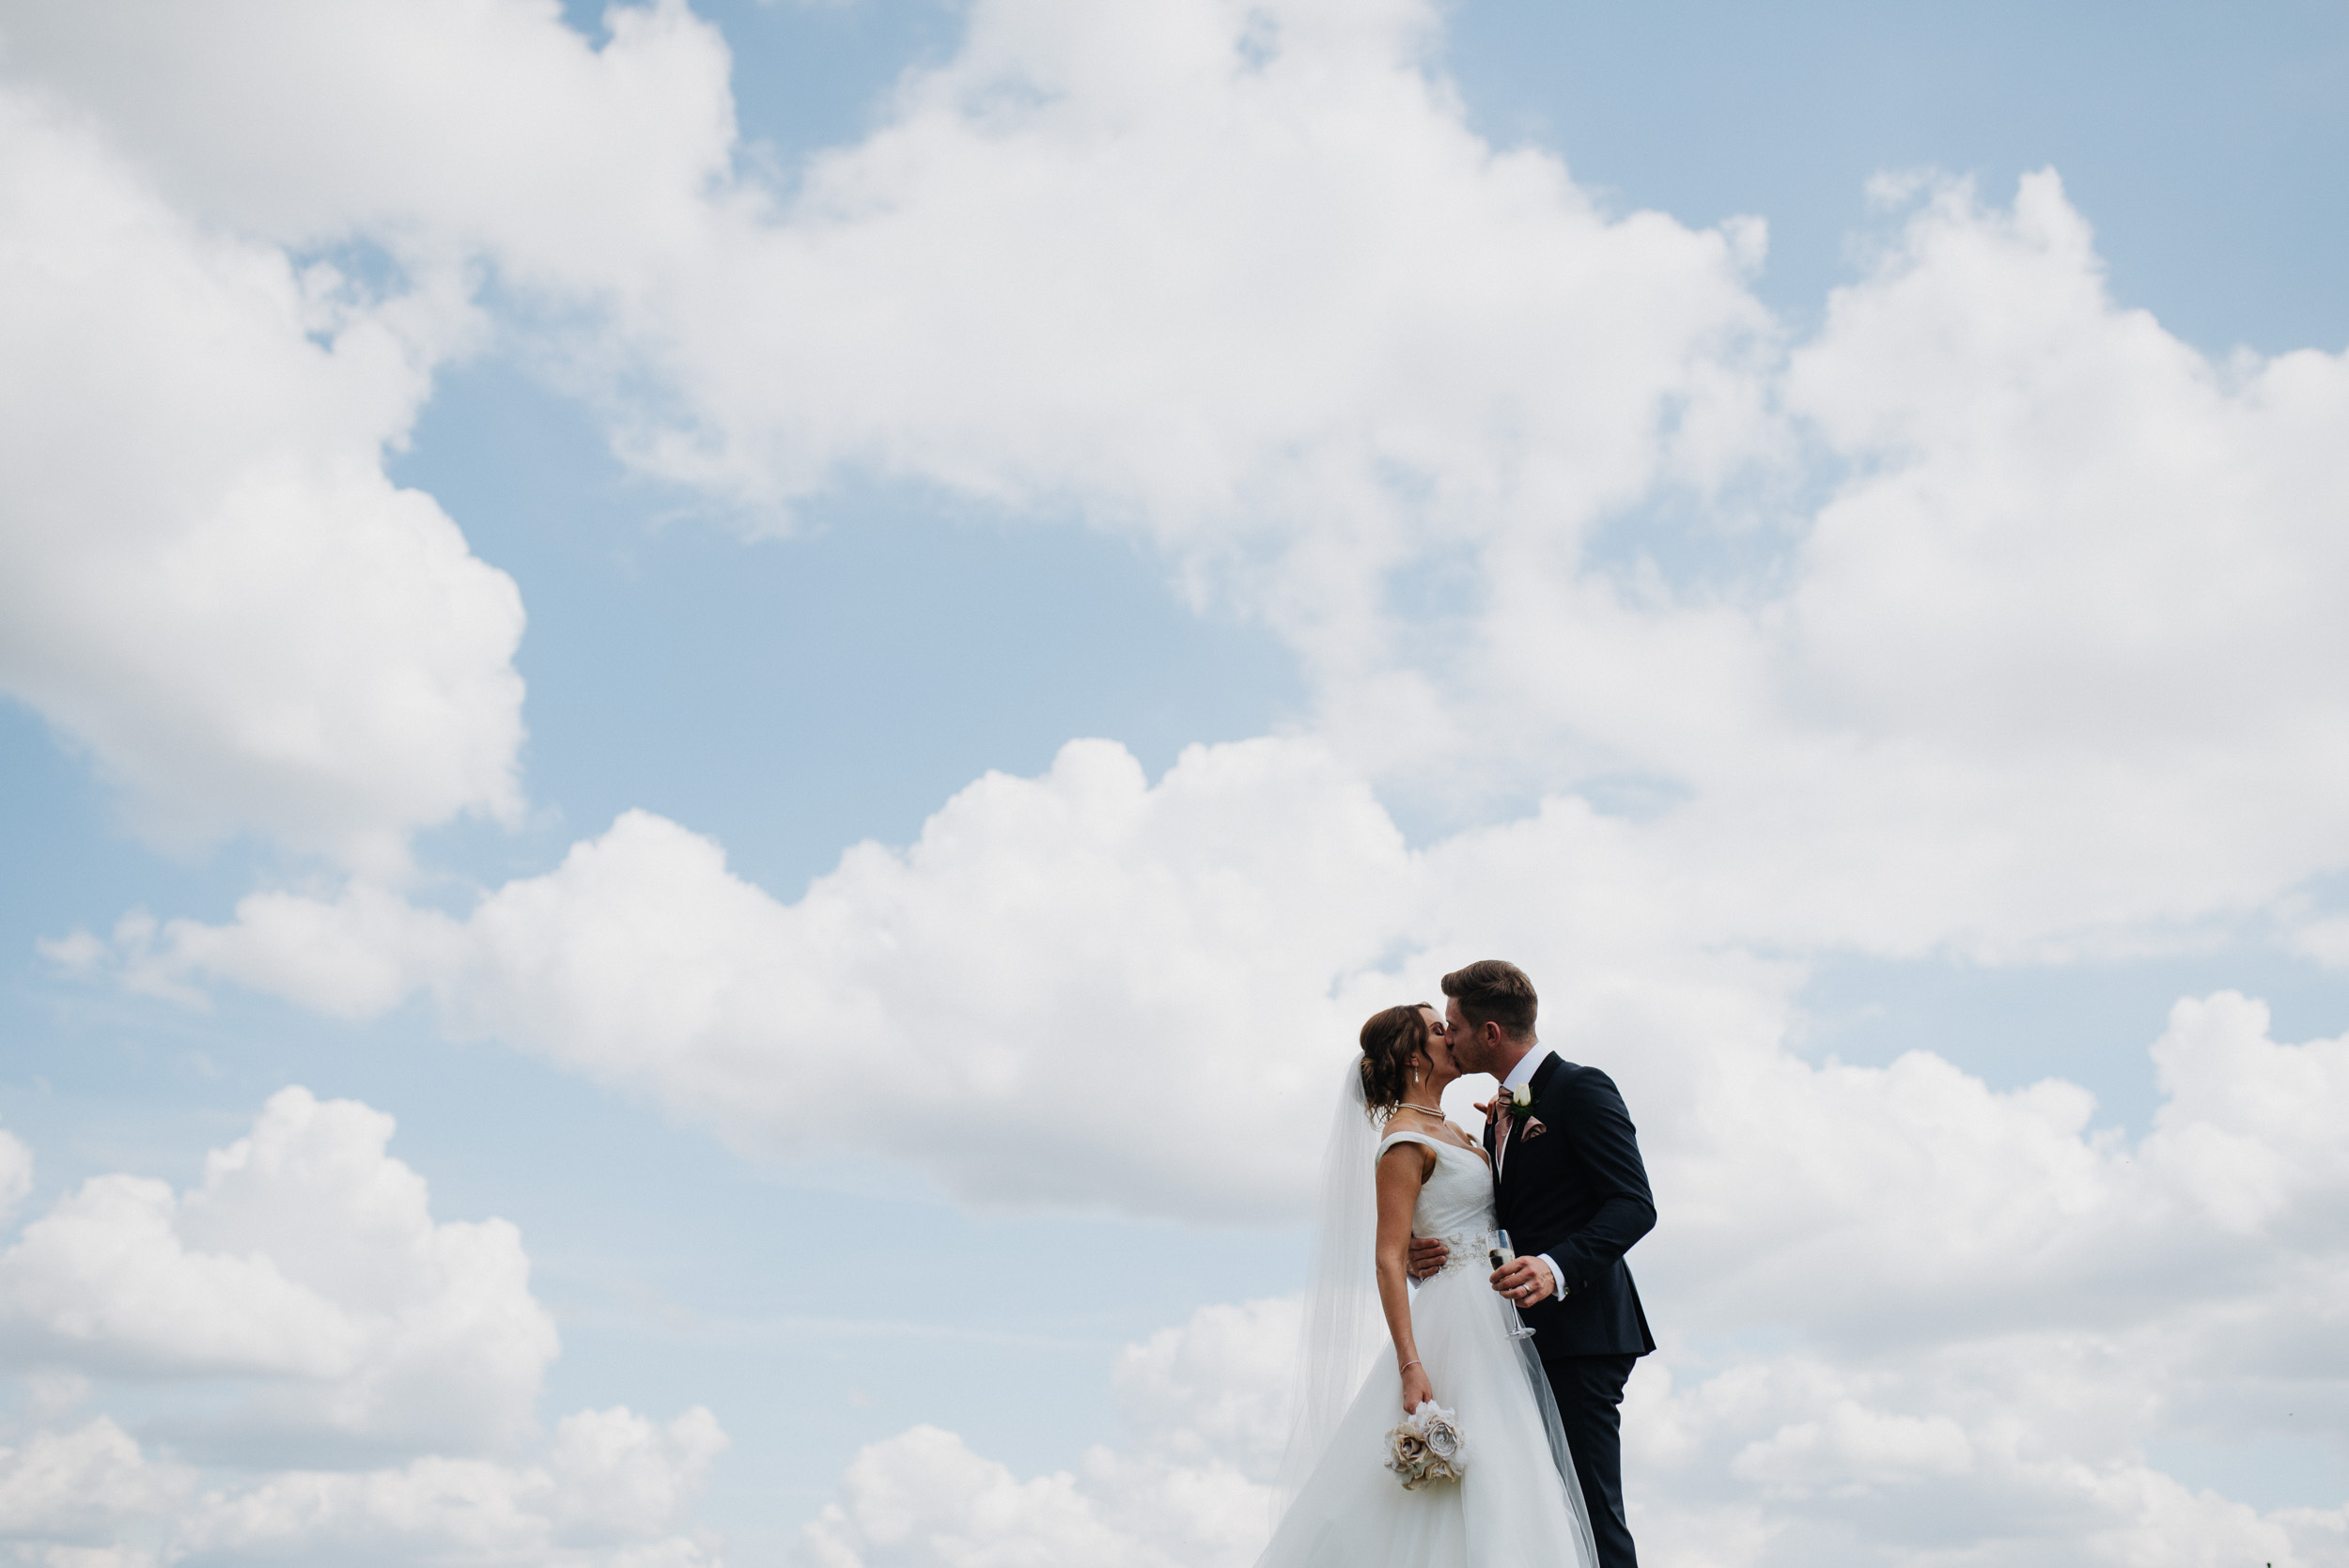 married couple portrait shoot in the clouds